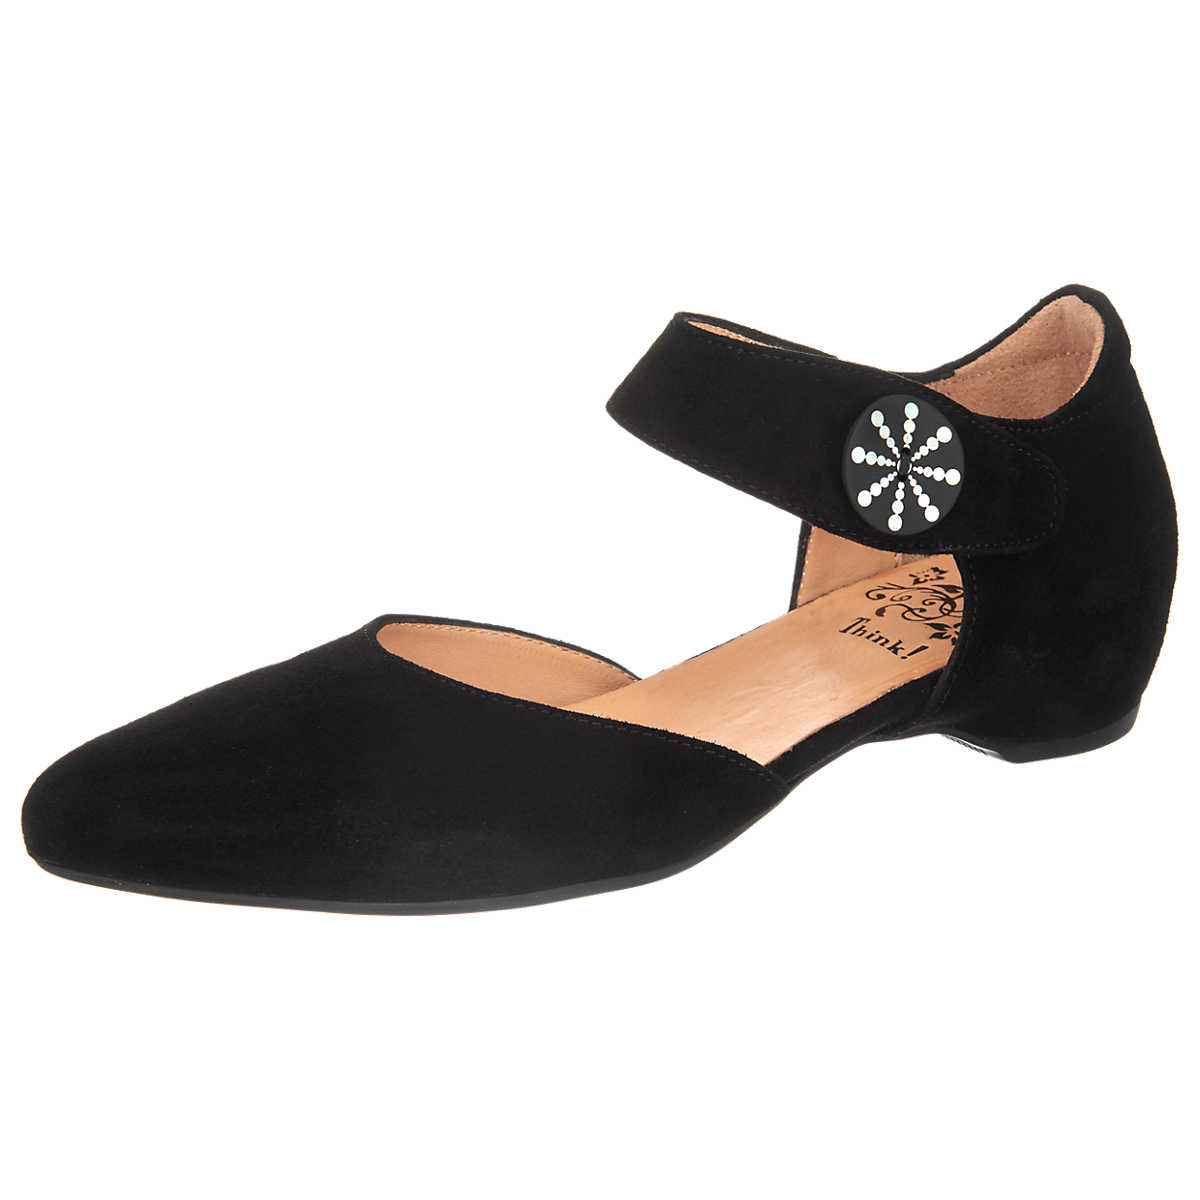 Think! Imma Pumps schwarz - Think! - Ballerinas - Schuhe - mirapodo.de